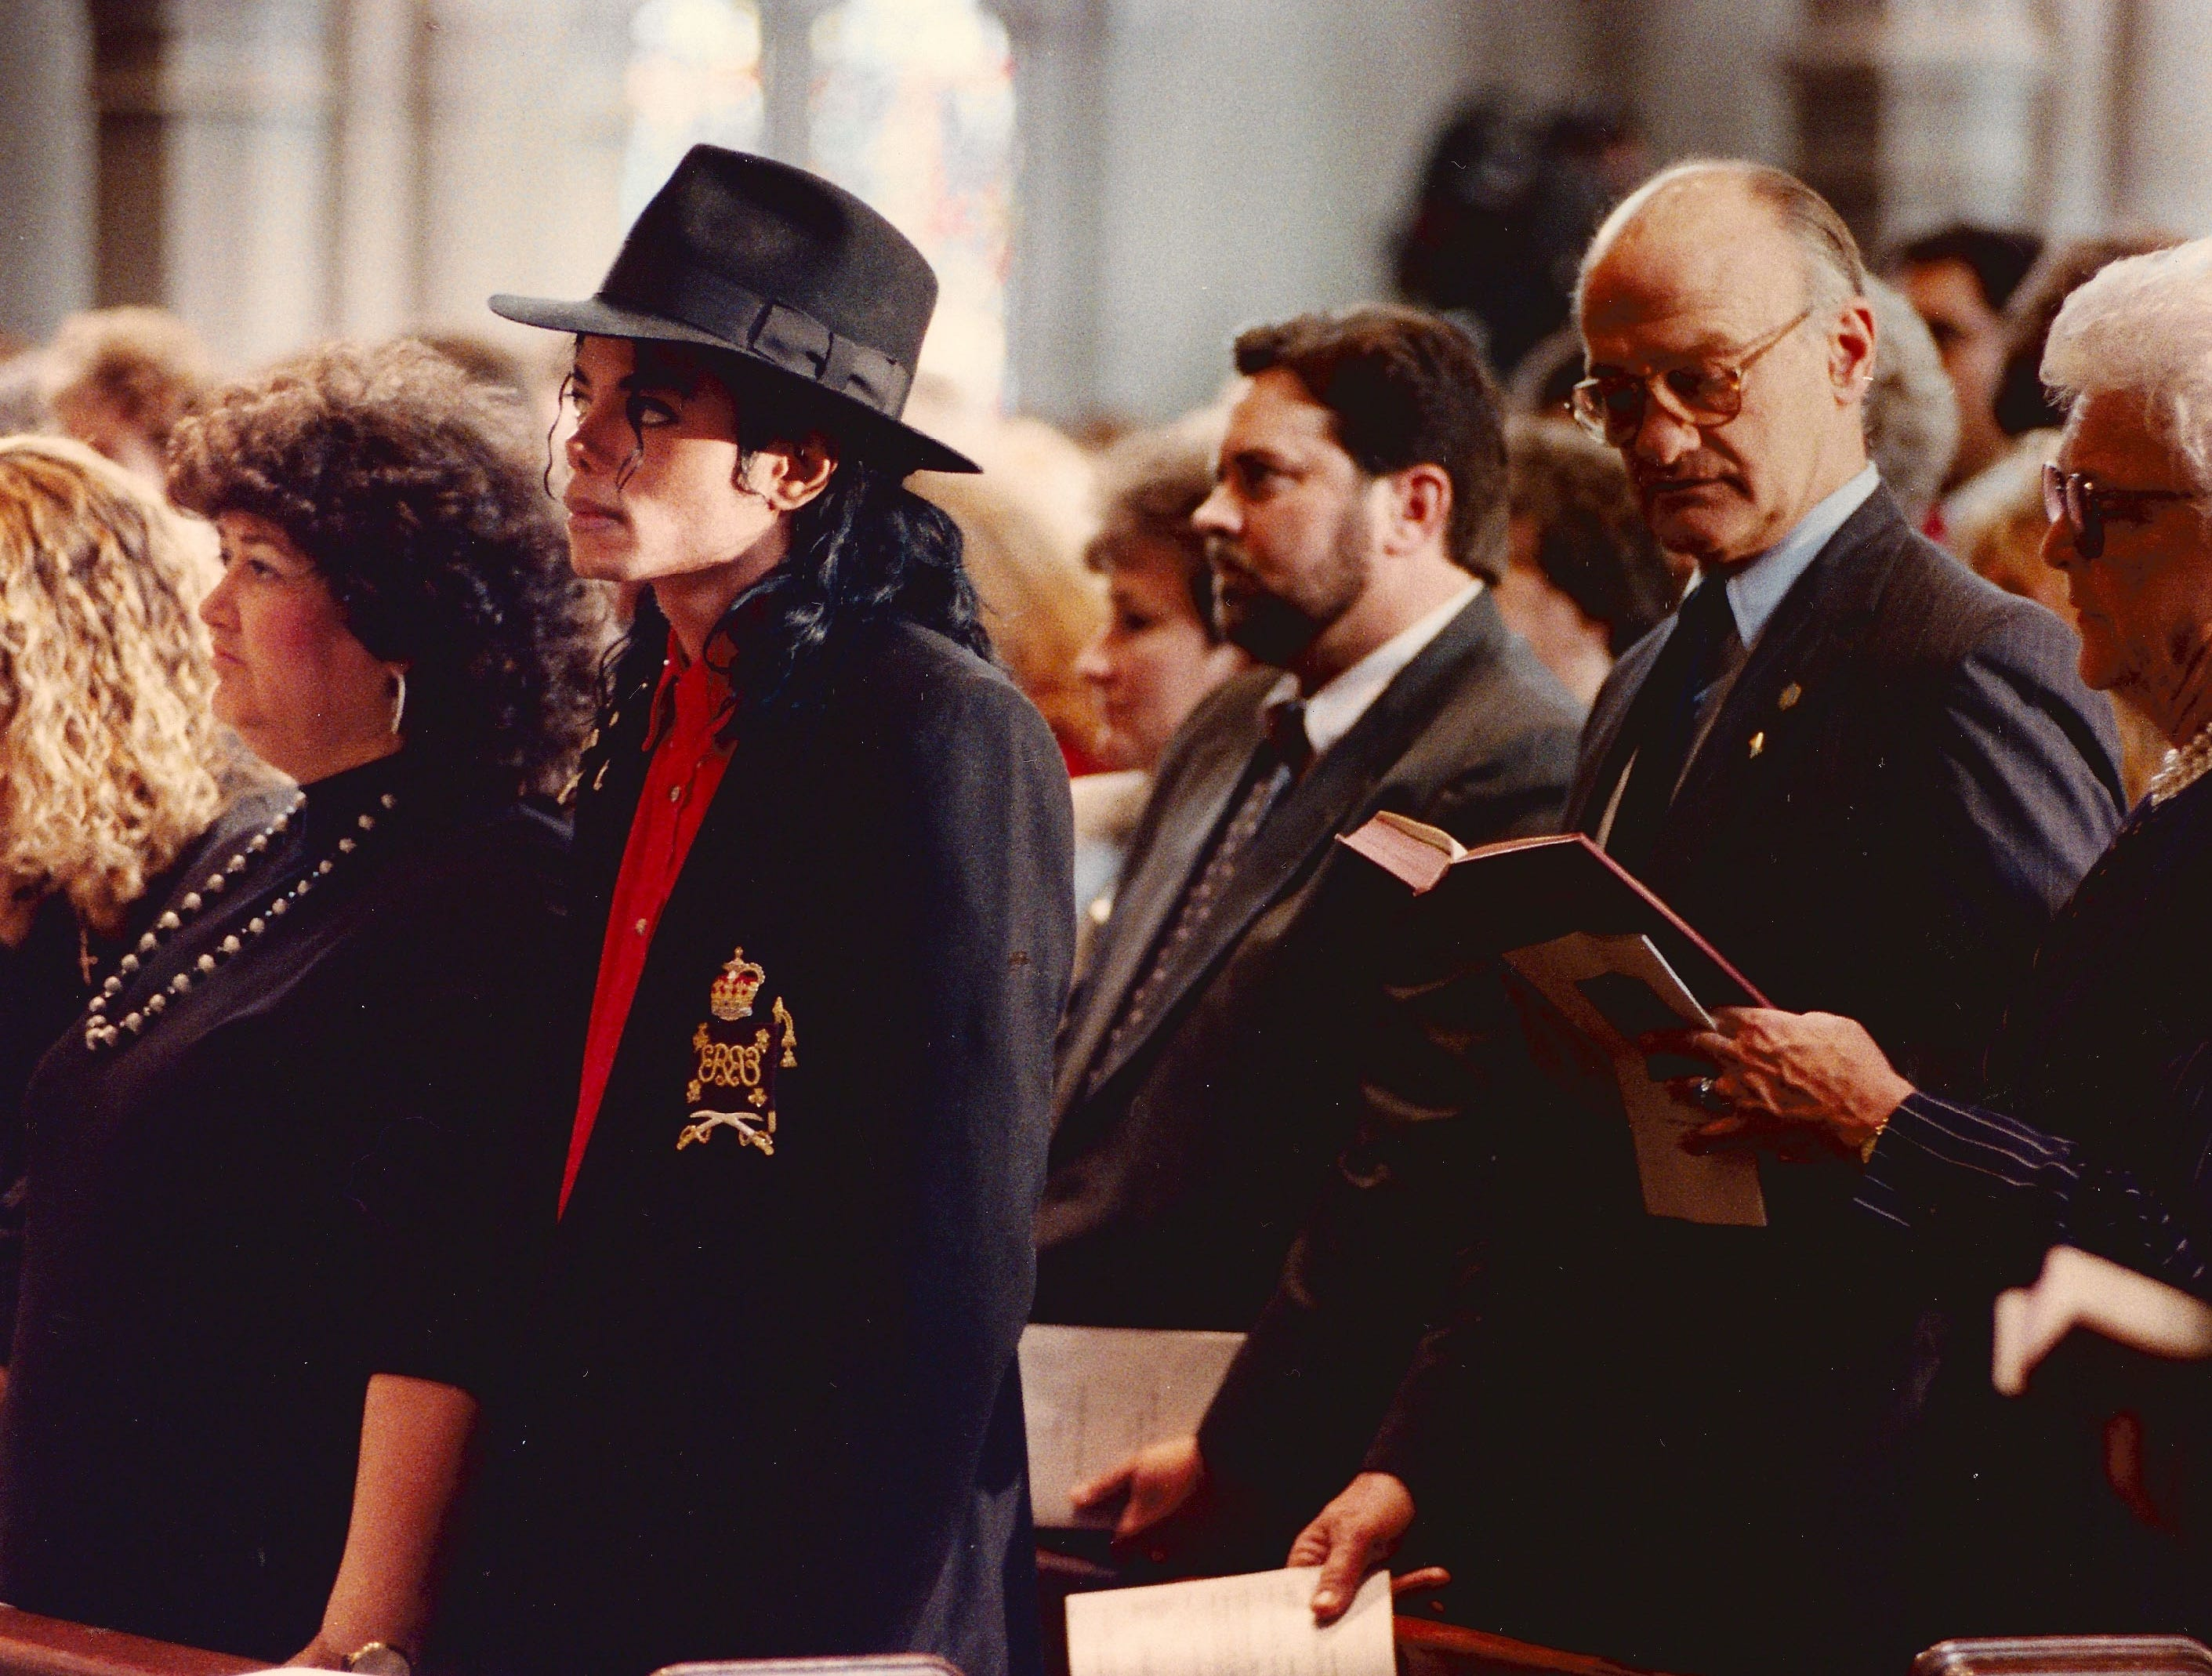 Jeanne White, left, stands with Michael Jackson during the funeral service for Ryan White April 11, 1990,  First Lady Barbara Bush is at far right.